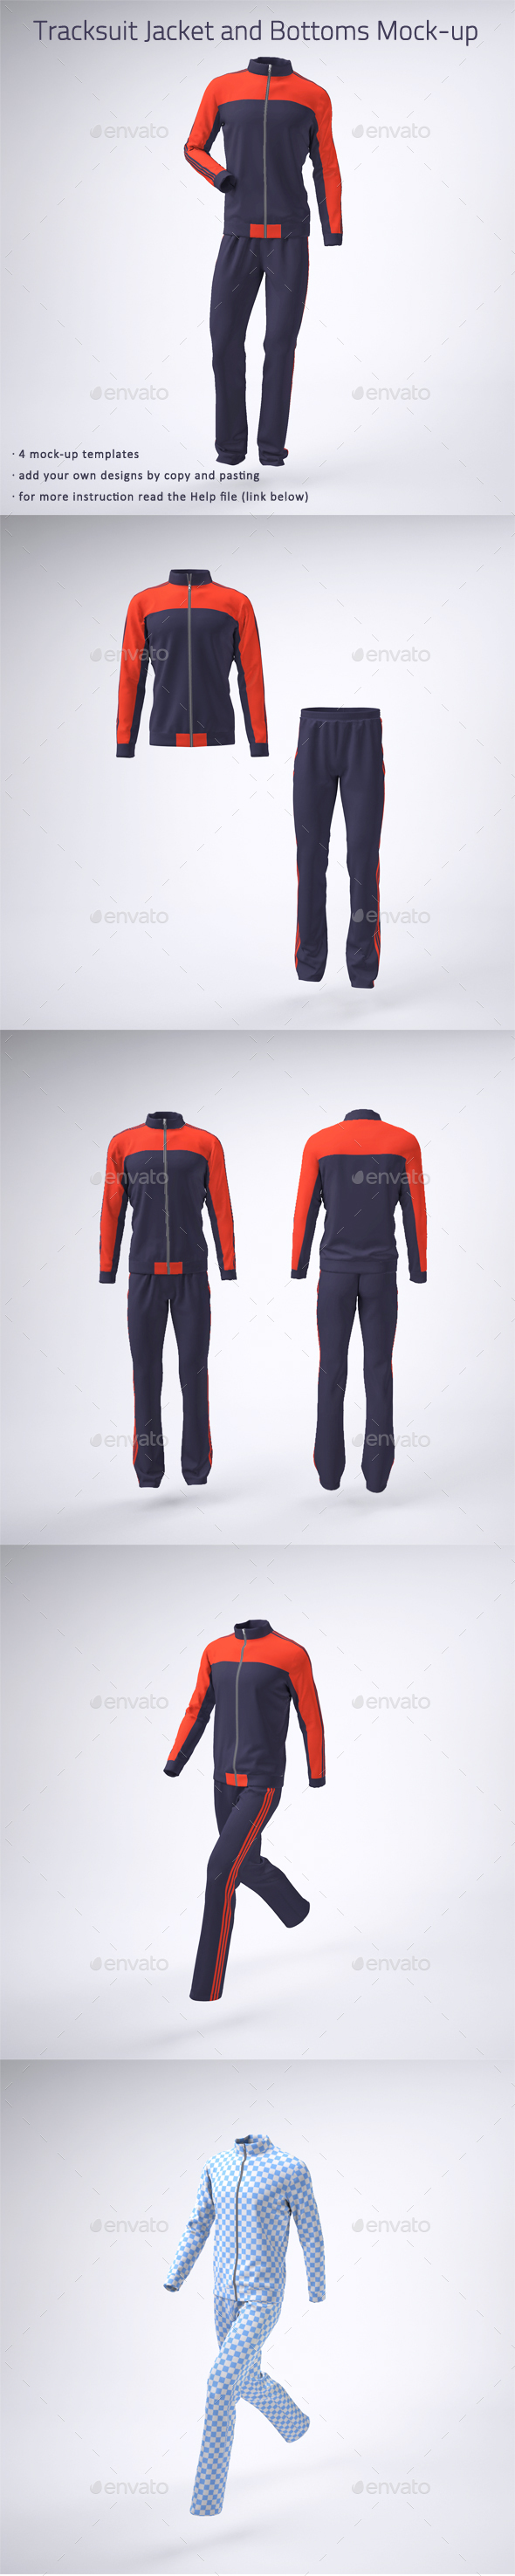 Tracksuit Jacket and Bottoms Mock-up - Miscellaneous Apparel